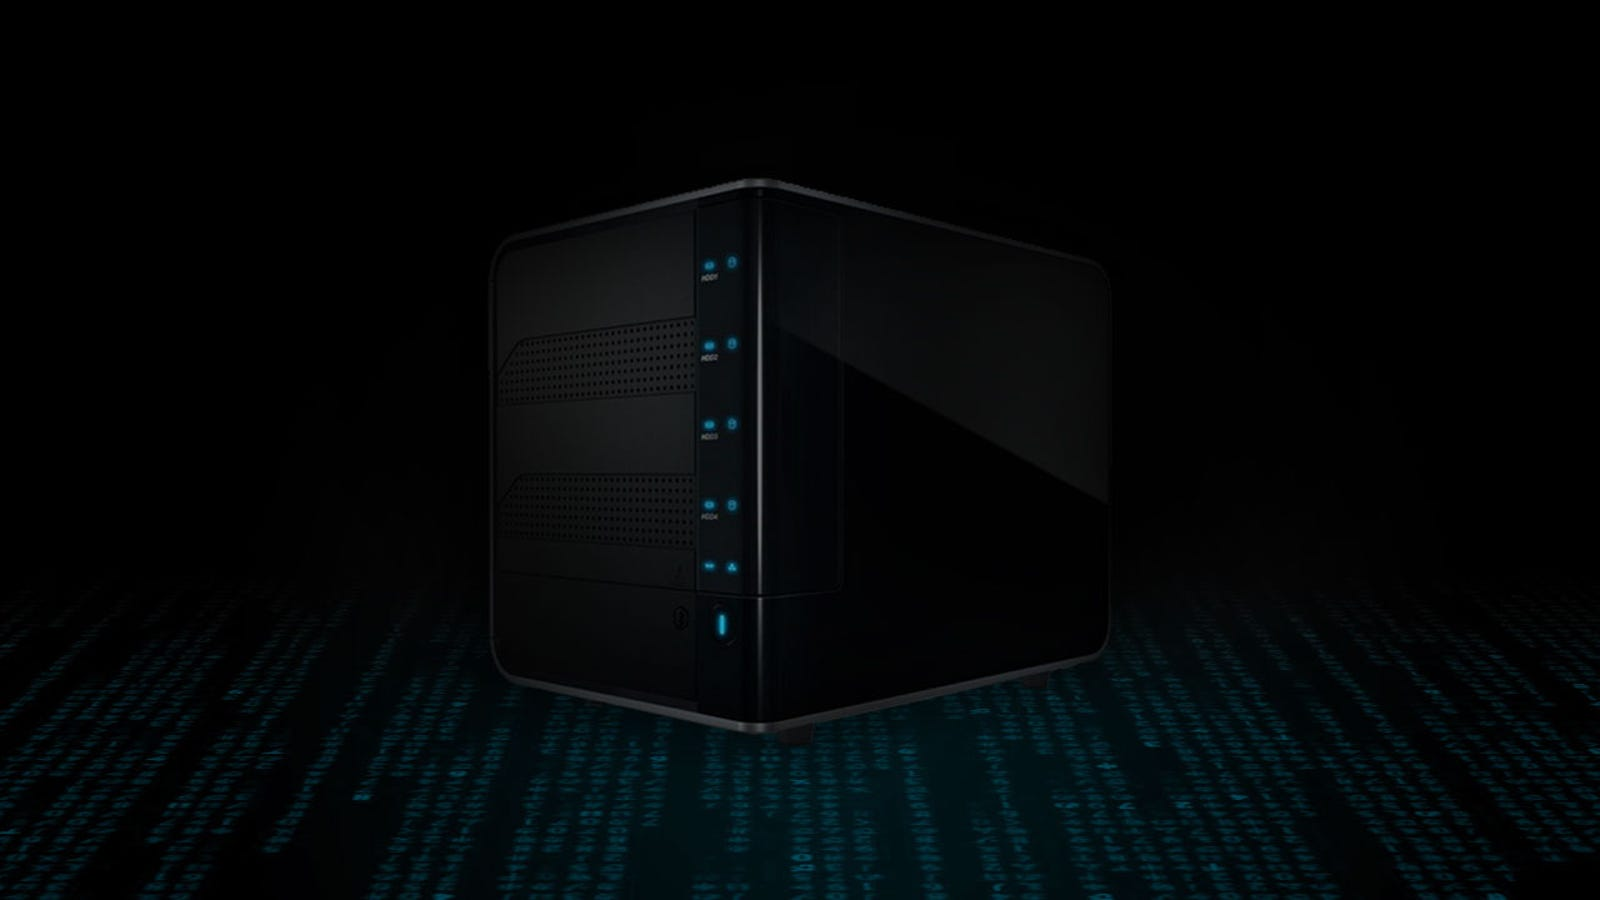 Turn Your FreeNAS Box Into the Ultimate Anonymous Downloading Machine